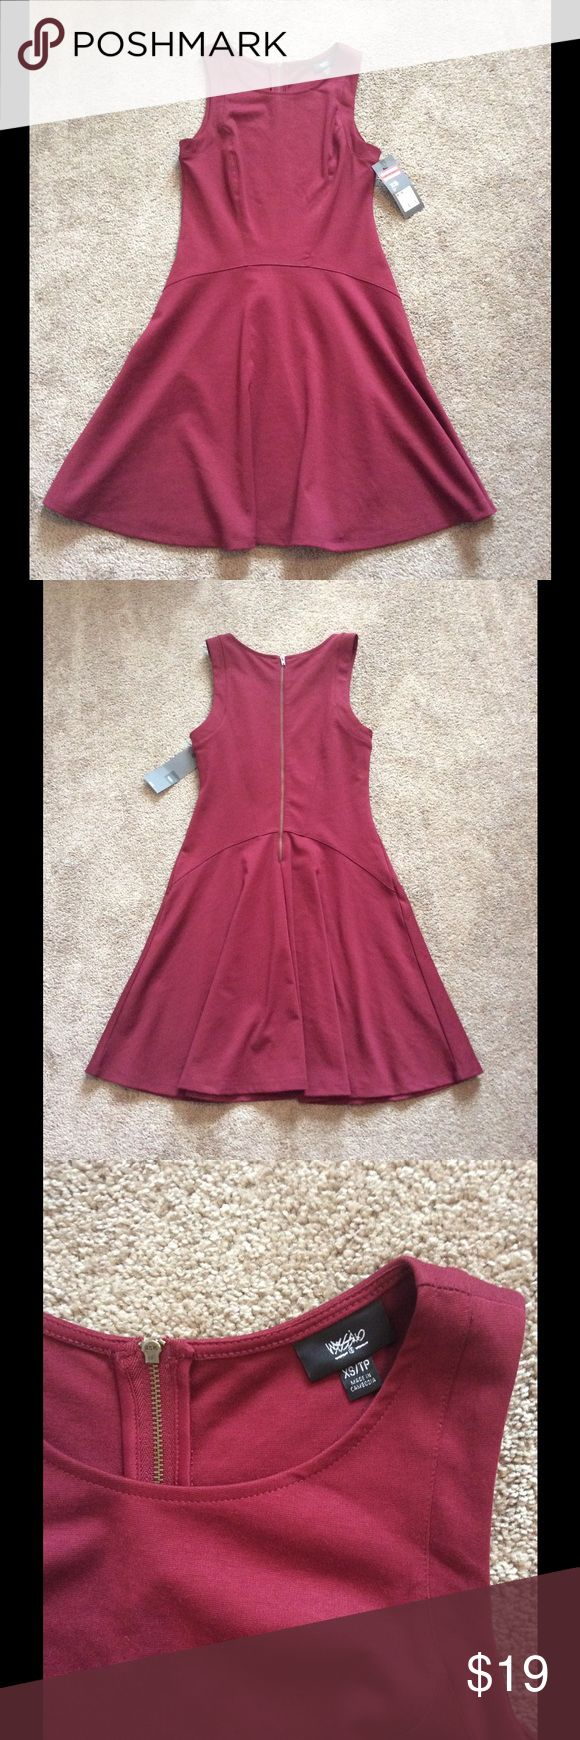 ⚡️SALE⚡️NWT Mossimo Maroon Skater Dress NWT Mossimo Maroon Skater Dress with back Zipper detail, Size XS Mossimo Supply Co. Dresses